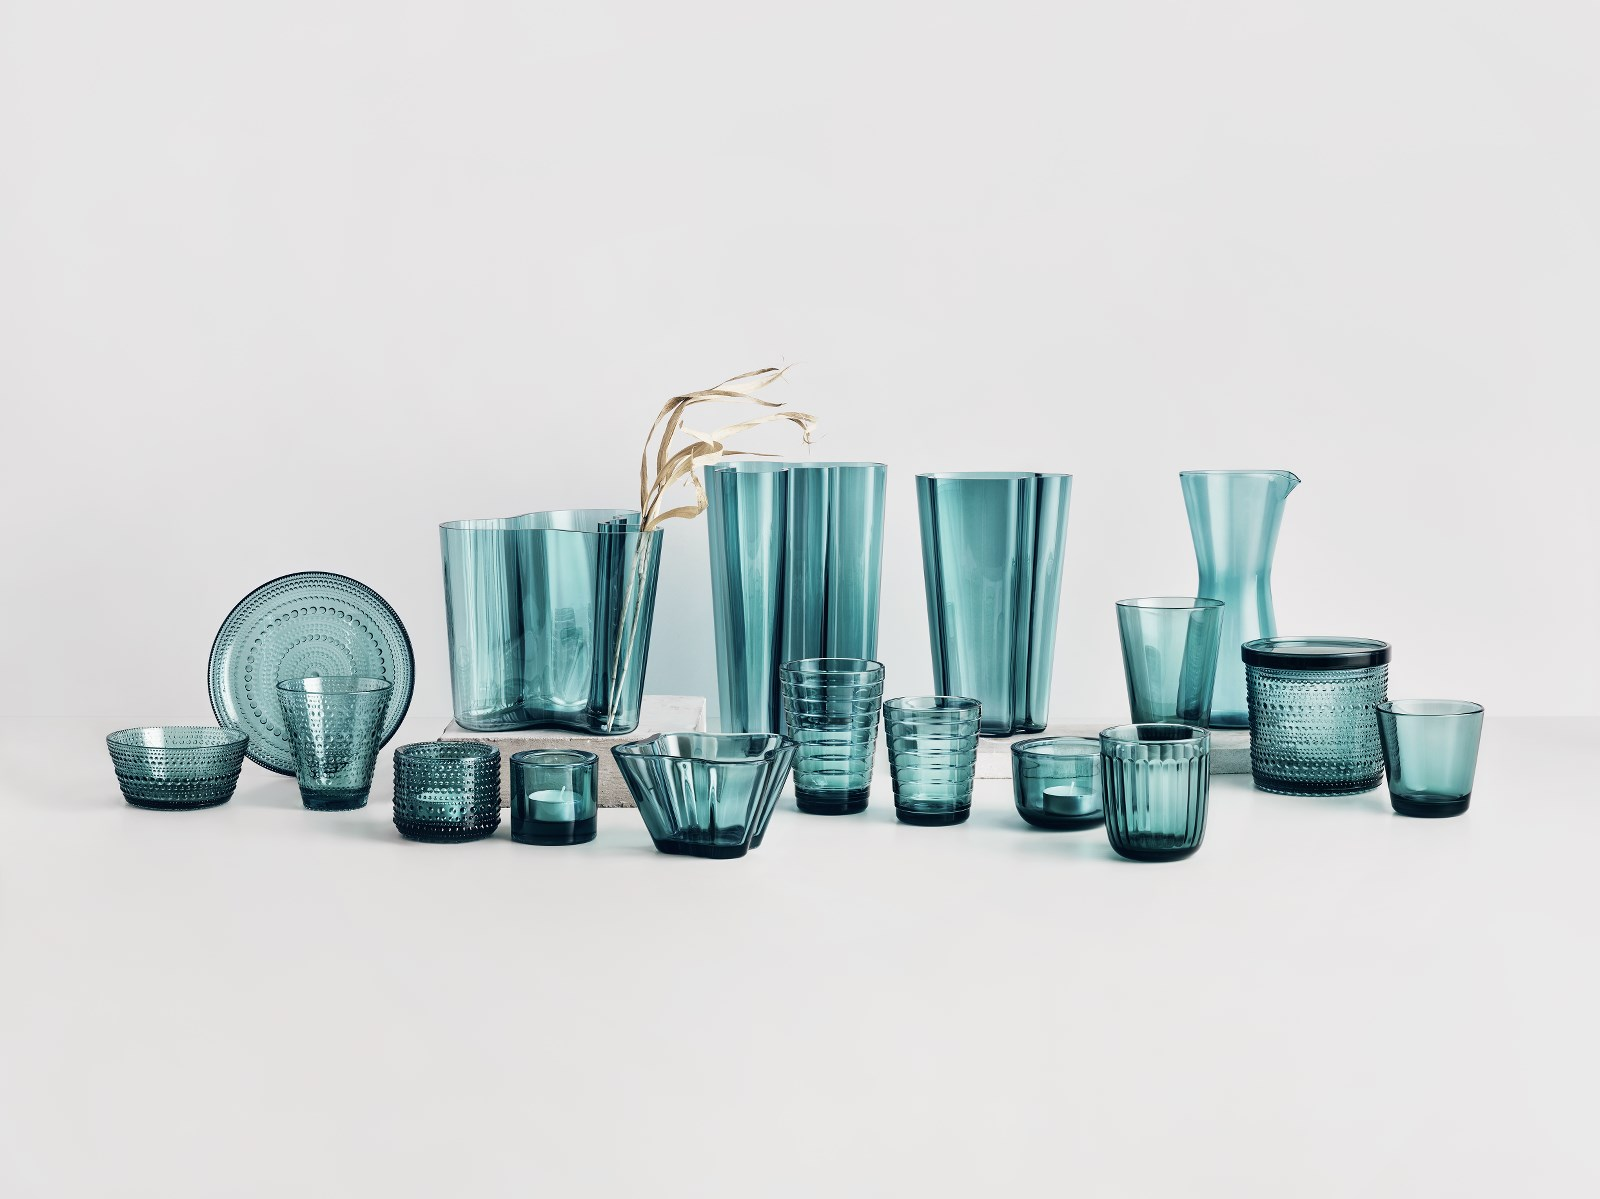 Iittala_2019_seablue_group_JPG